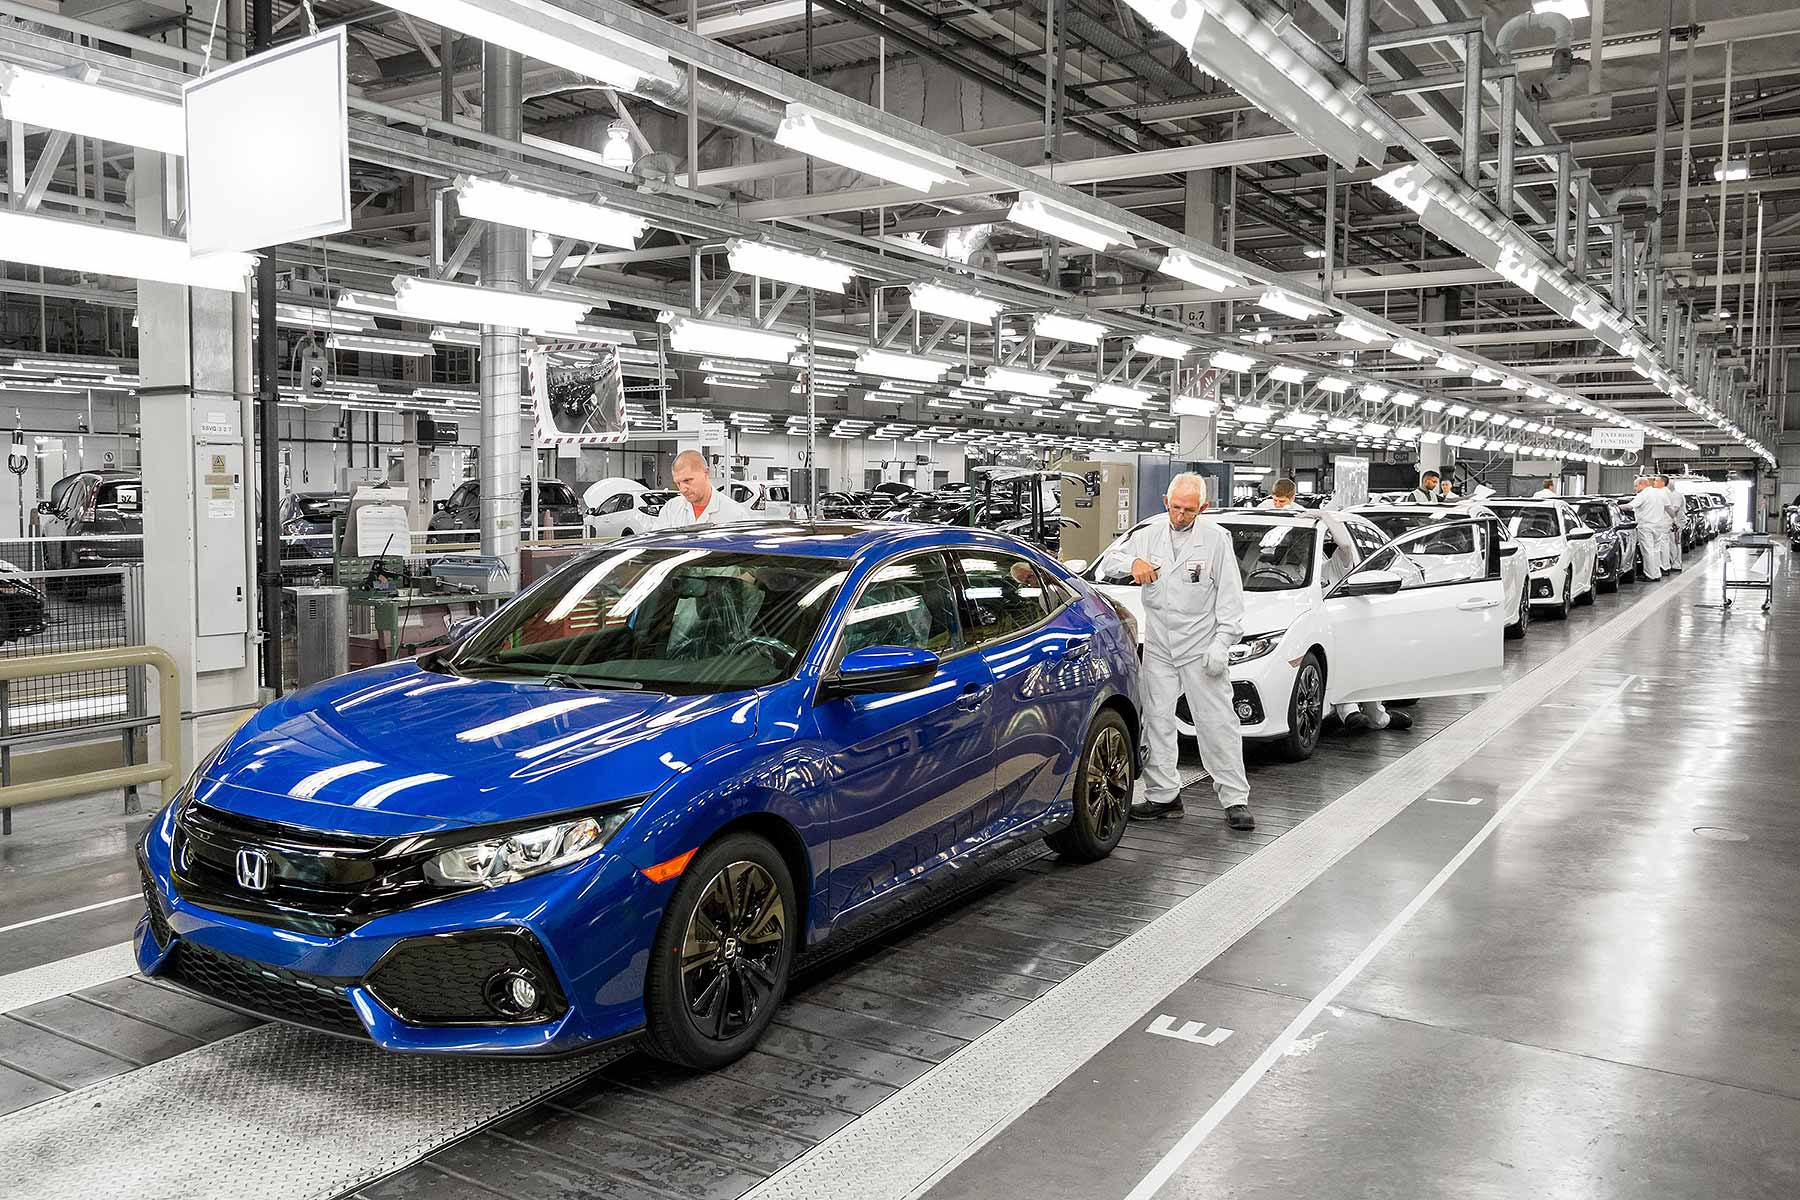 Honda Civic new car production at Swindon, England